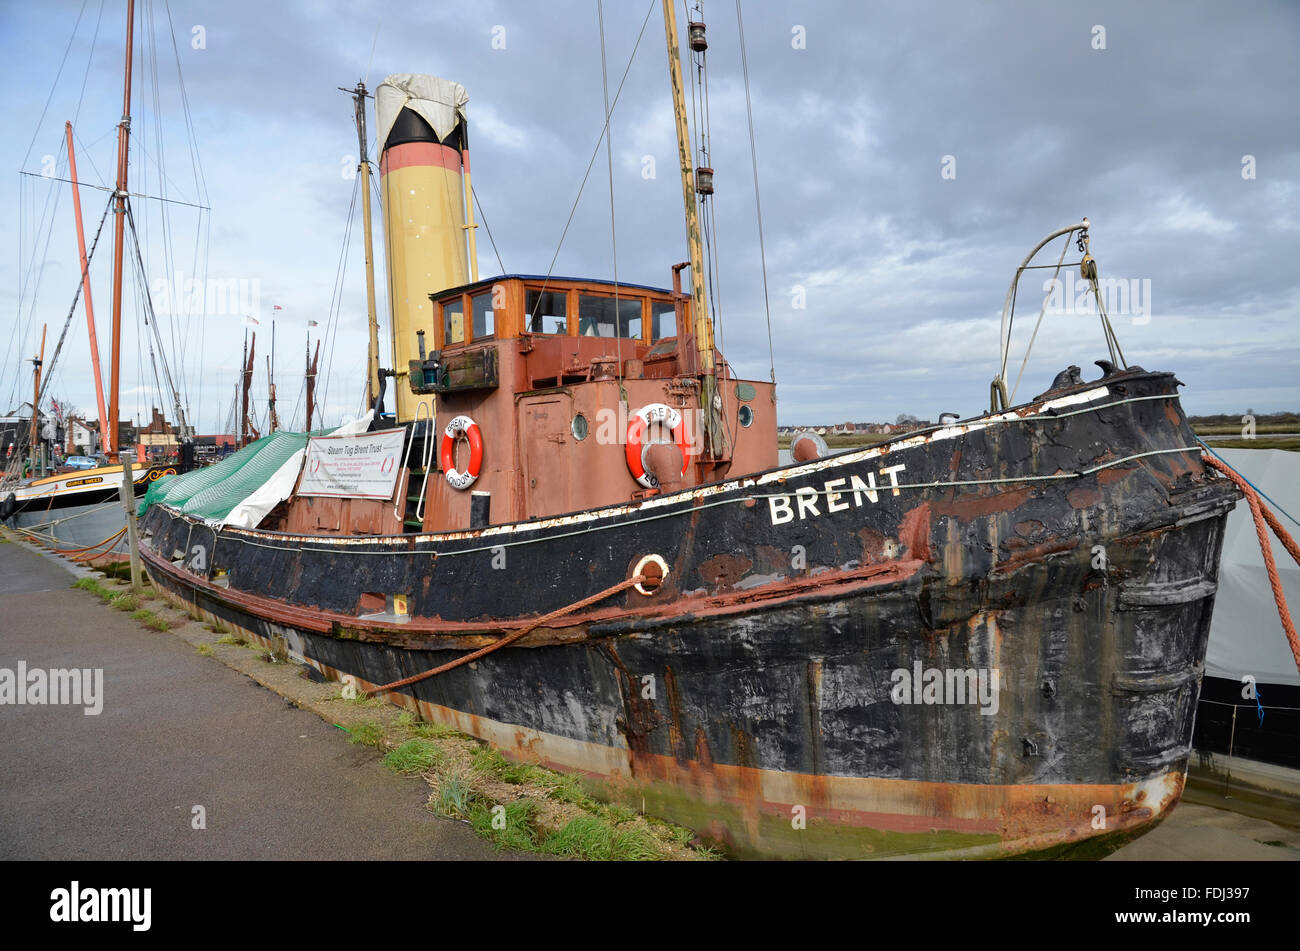 A restored tug boat on the River Blackwater in Maldon, Essex - Stock Image